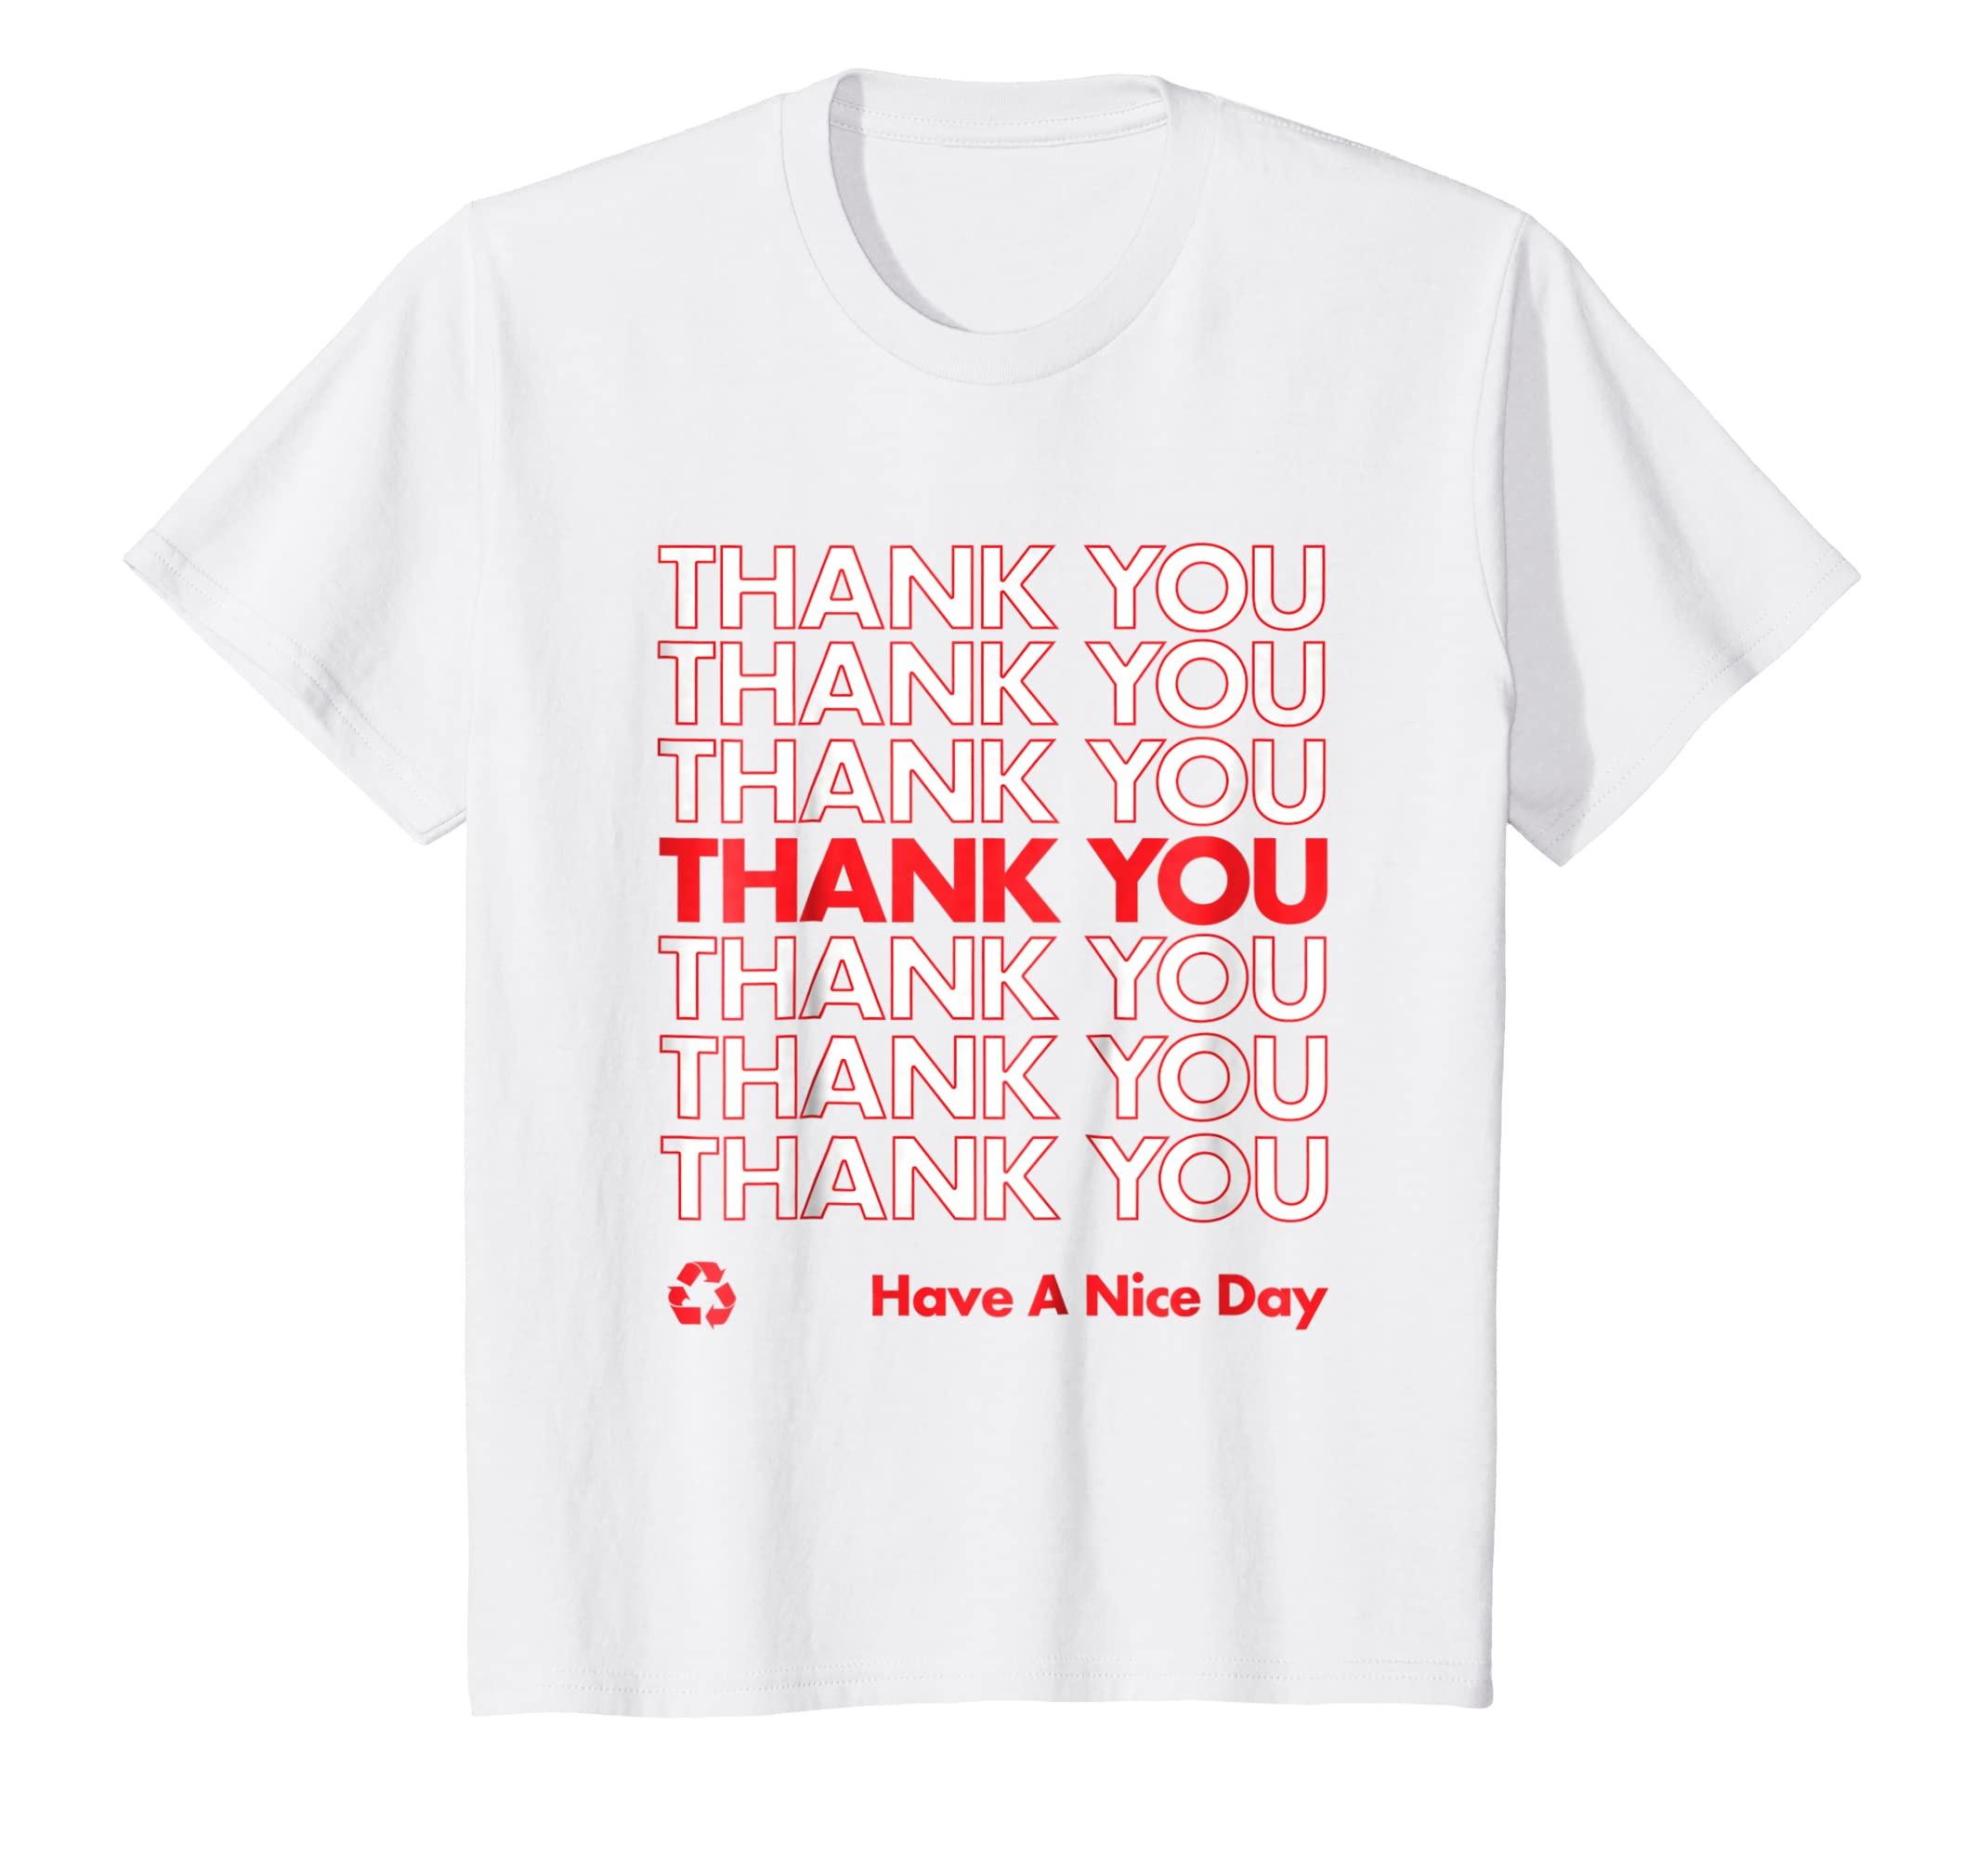 4011637f Amazon.com: Thank You Have A Nice Day shirt Halloween Plastic Bag tshirt:  Clothing